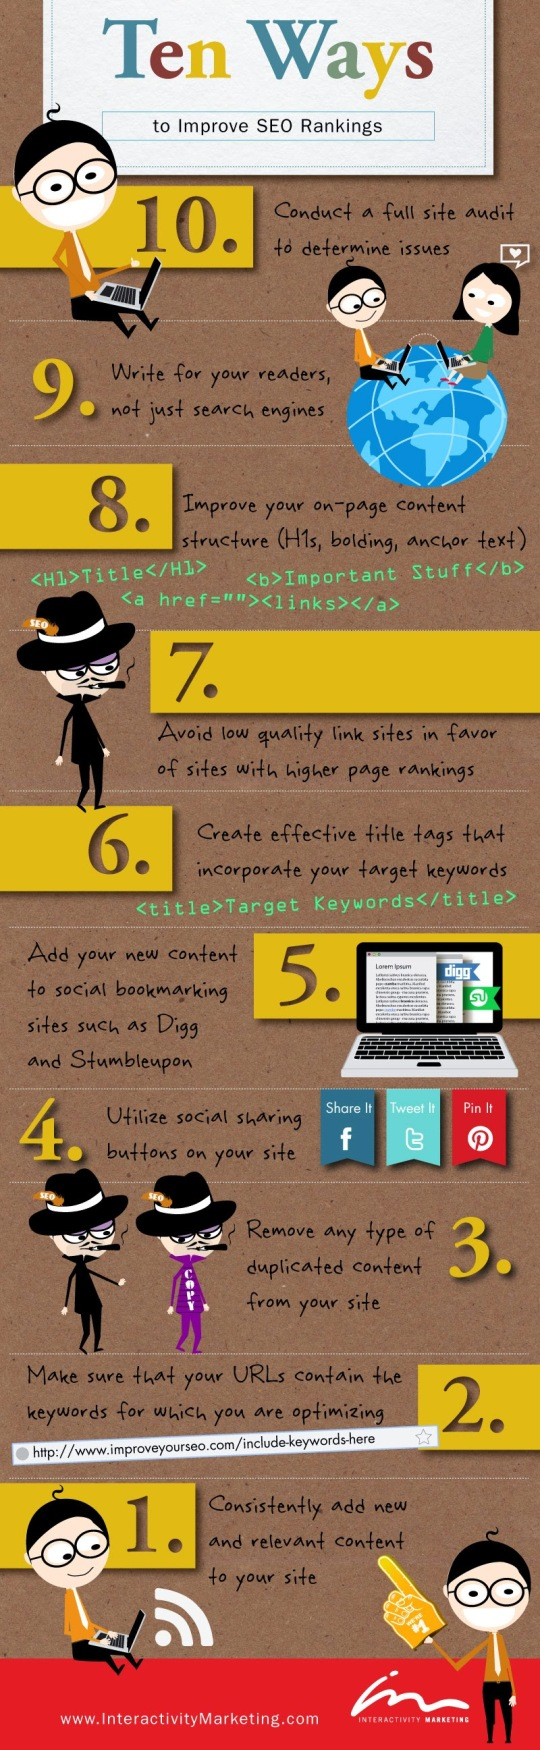 10 Simple Tips for SEO